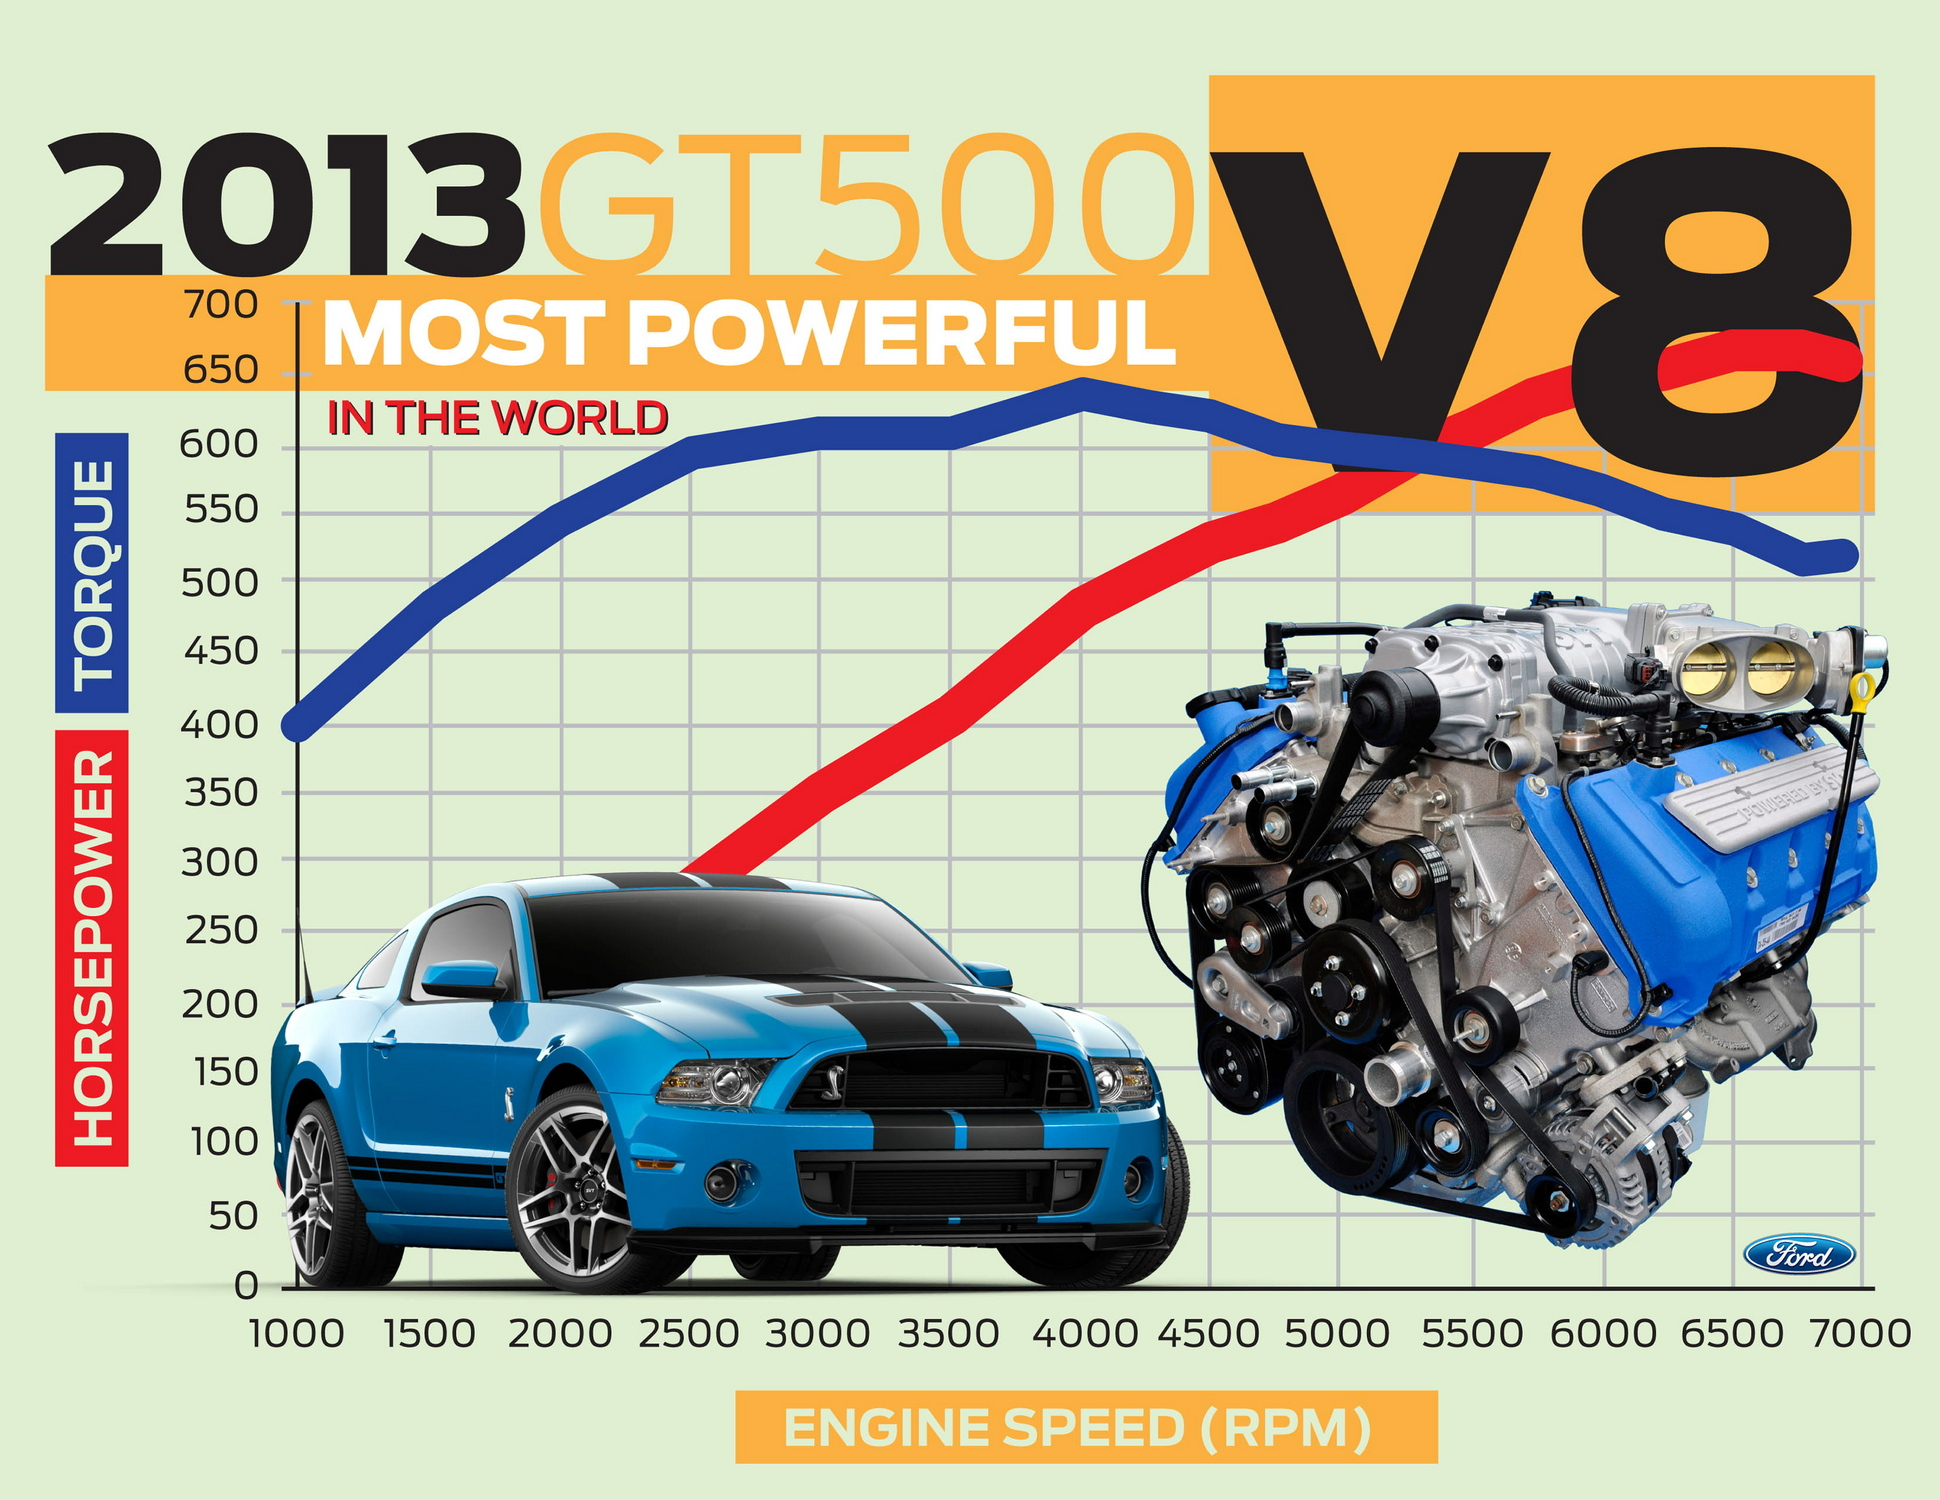 Ford 2013 Gt500 Engine Certified As World 39 S Most Powerful